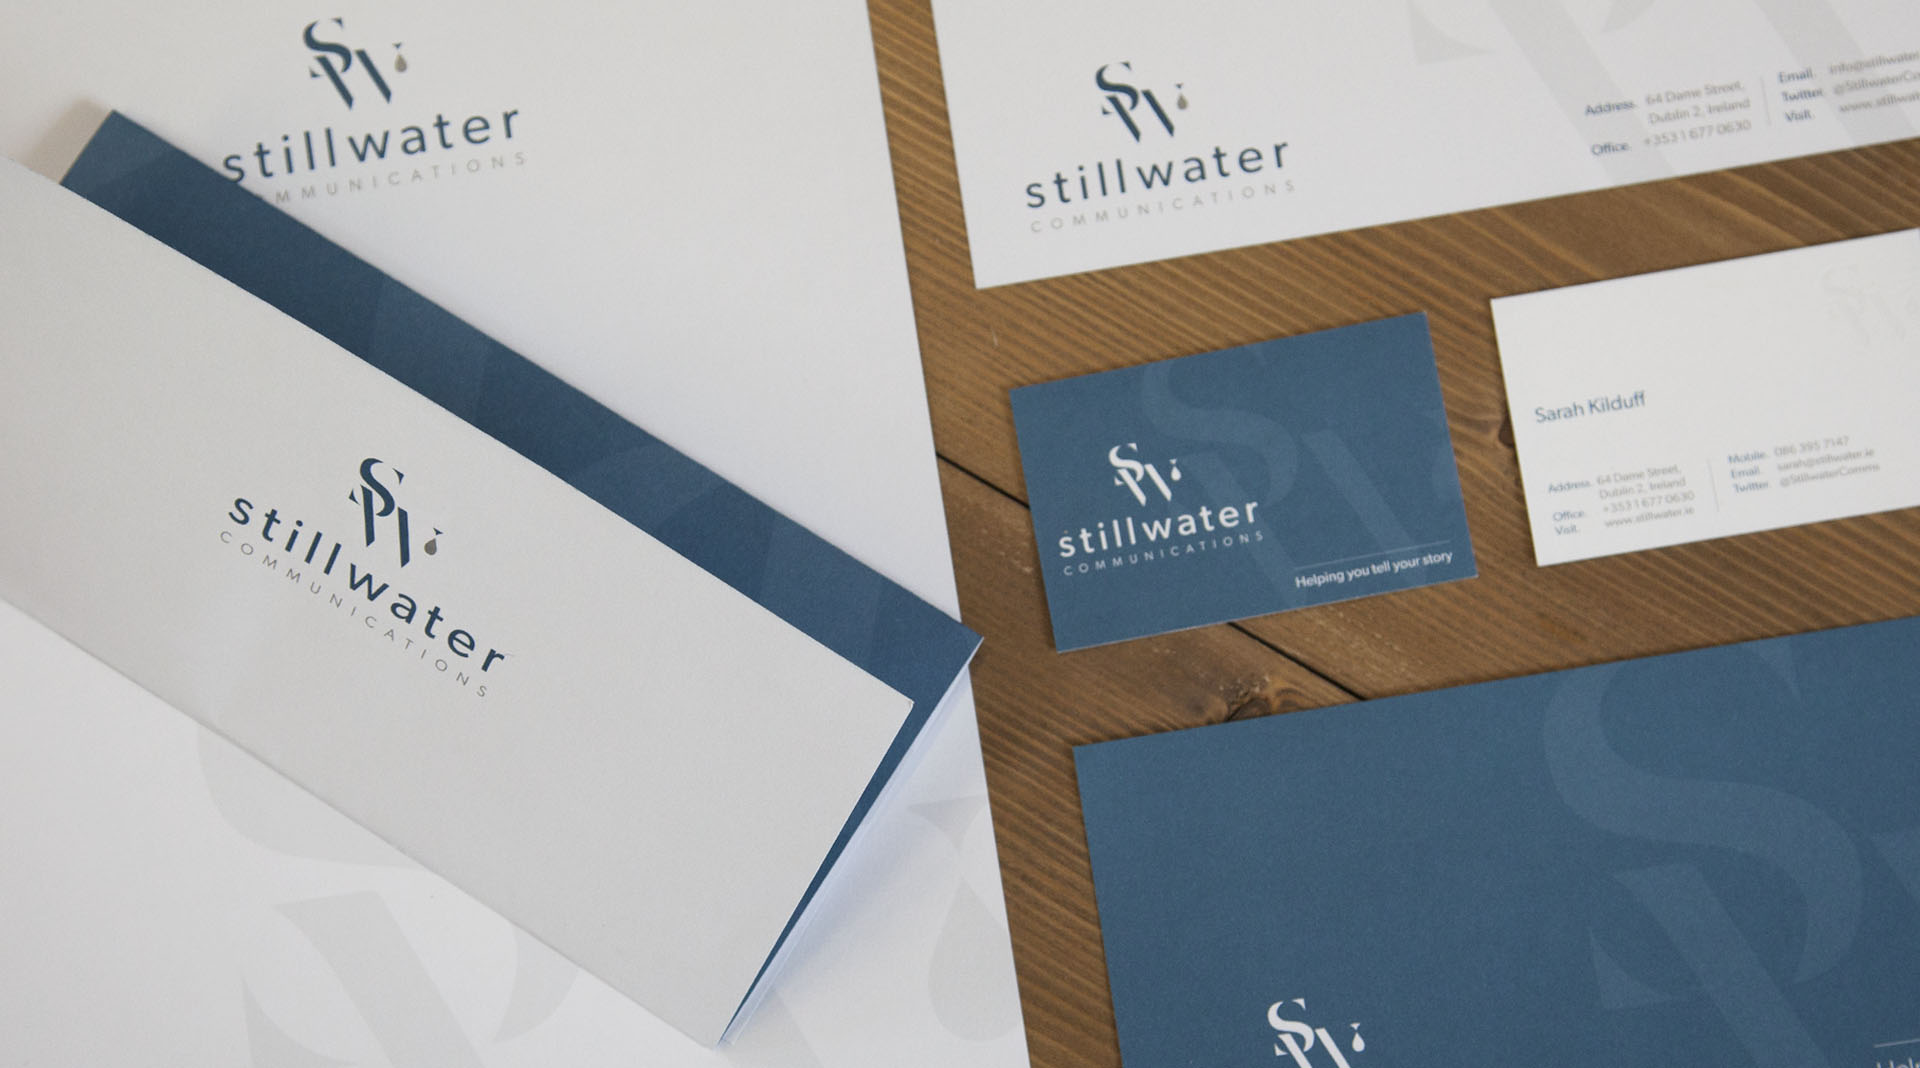 Stillwater Communications Corporate Stationary Design.